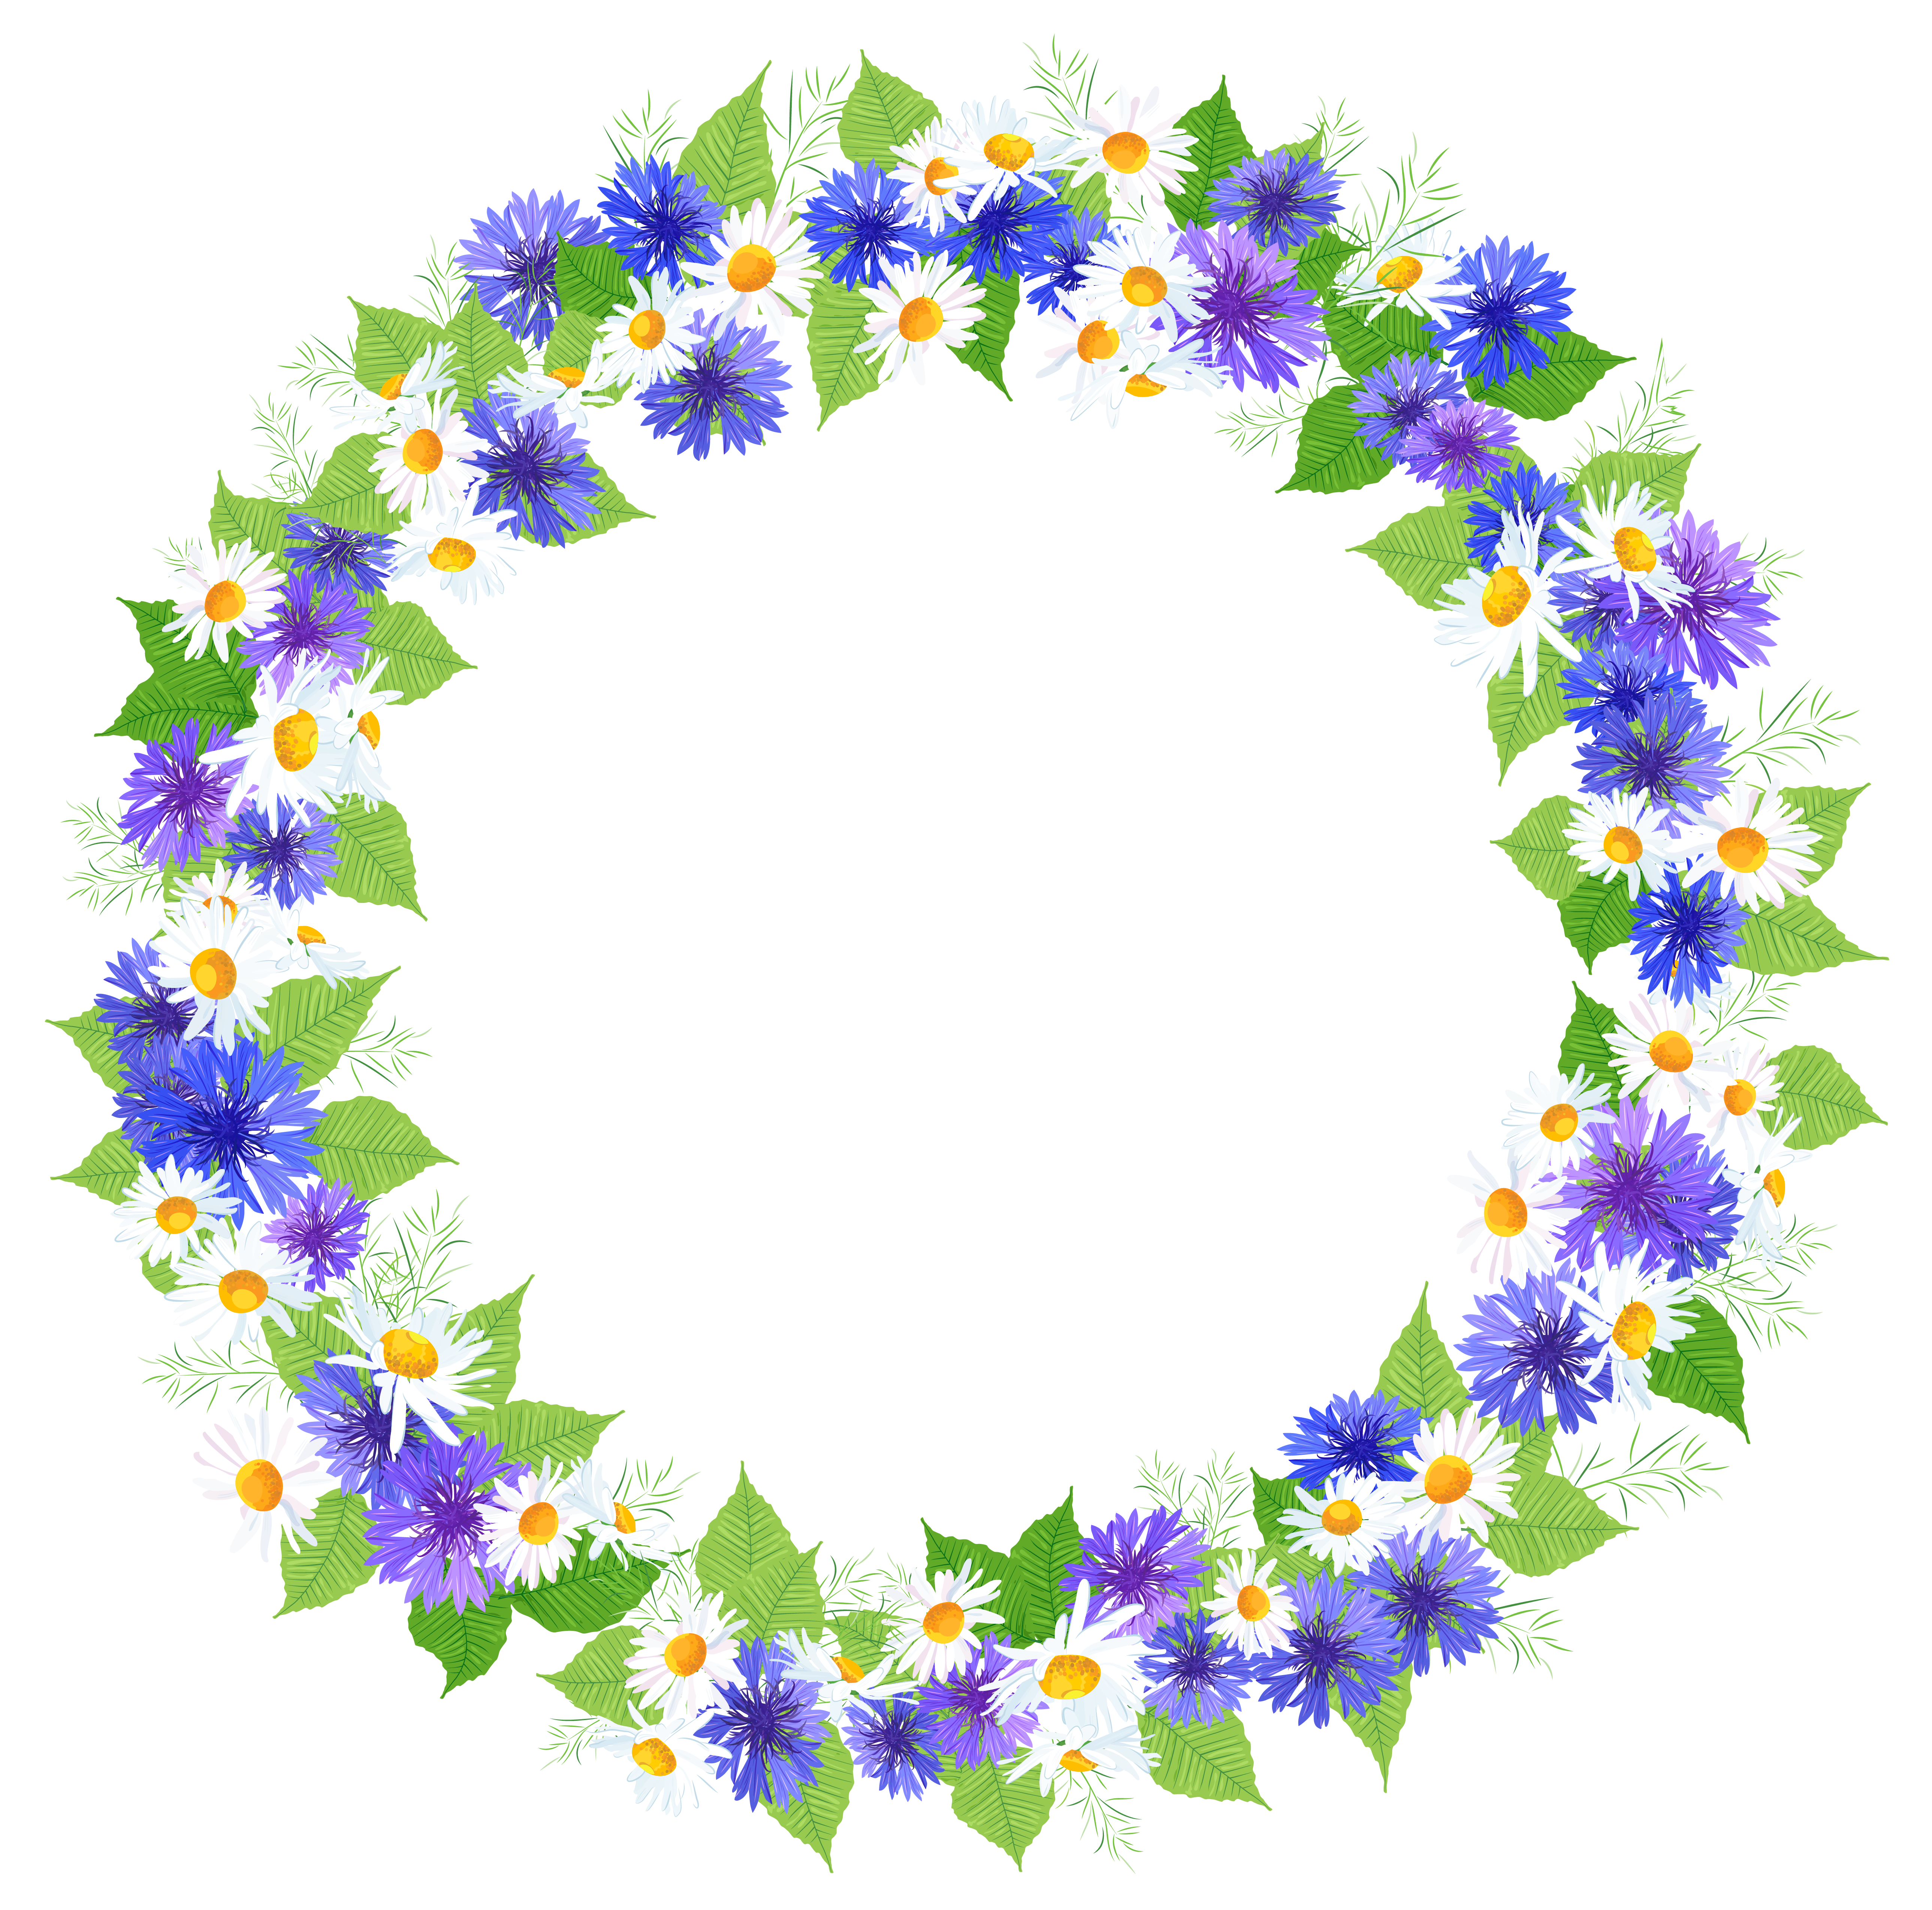 Circle flower png. Floral round decoration clipart